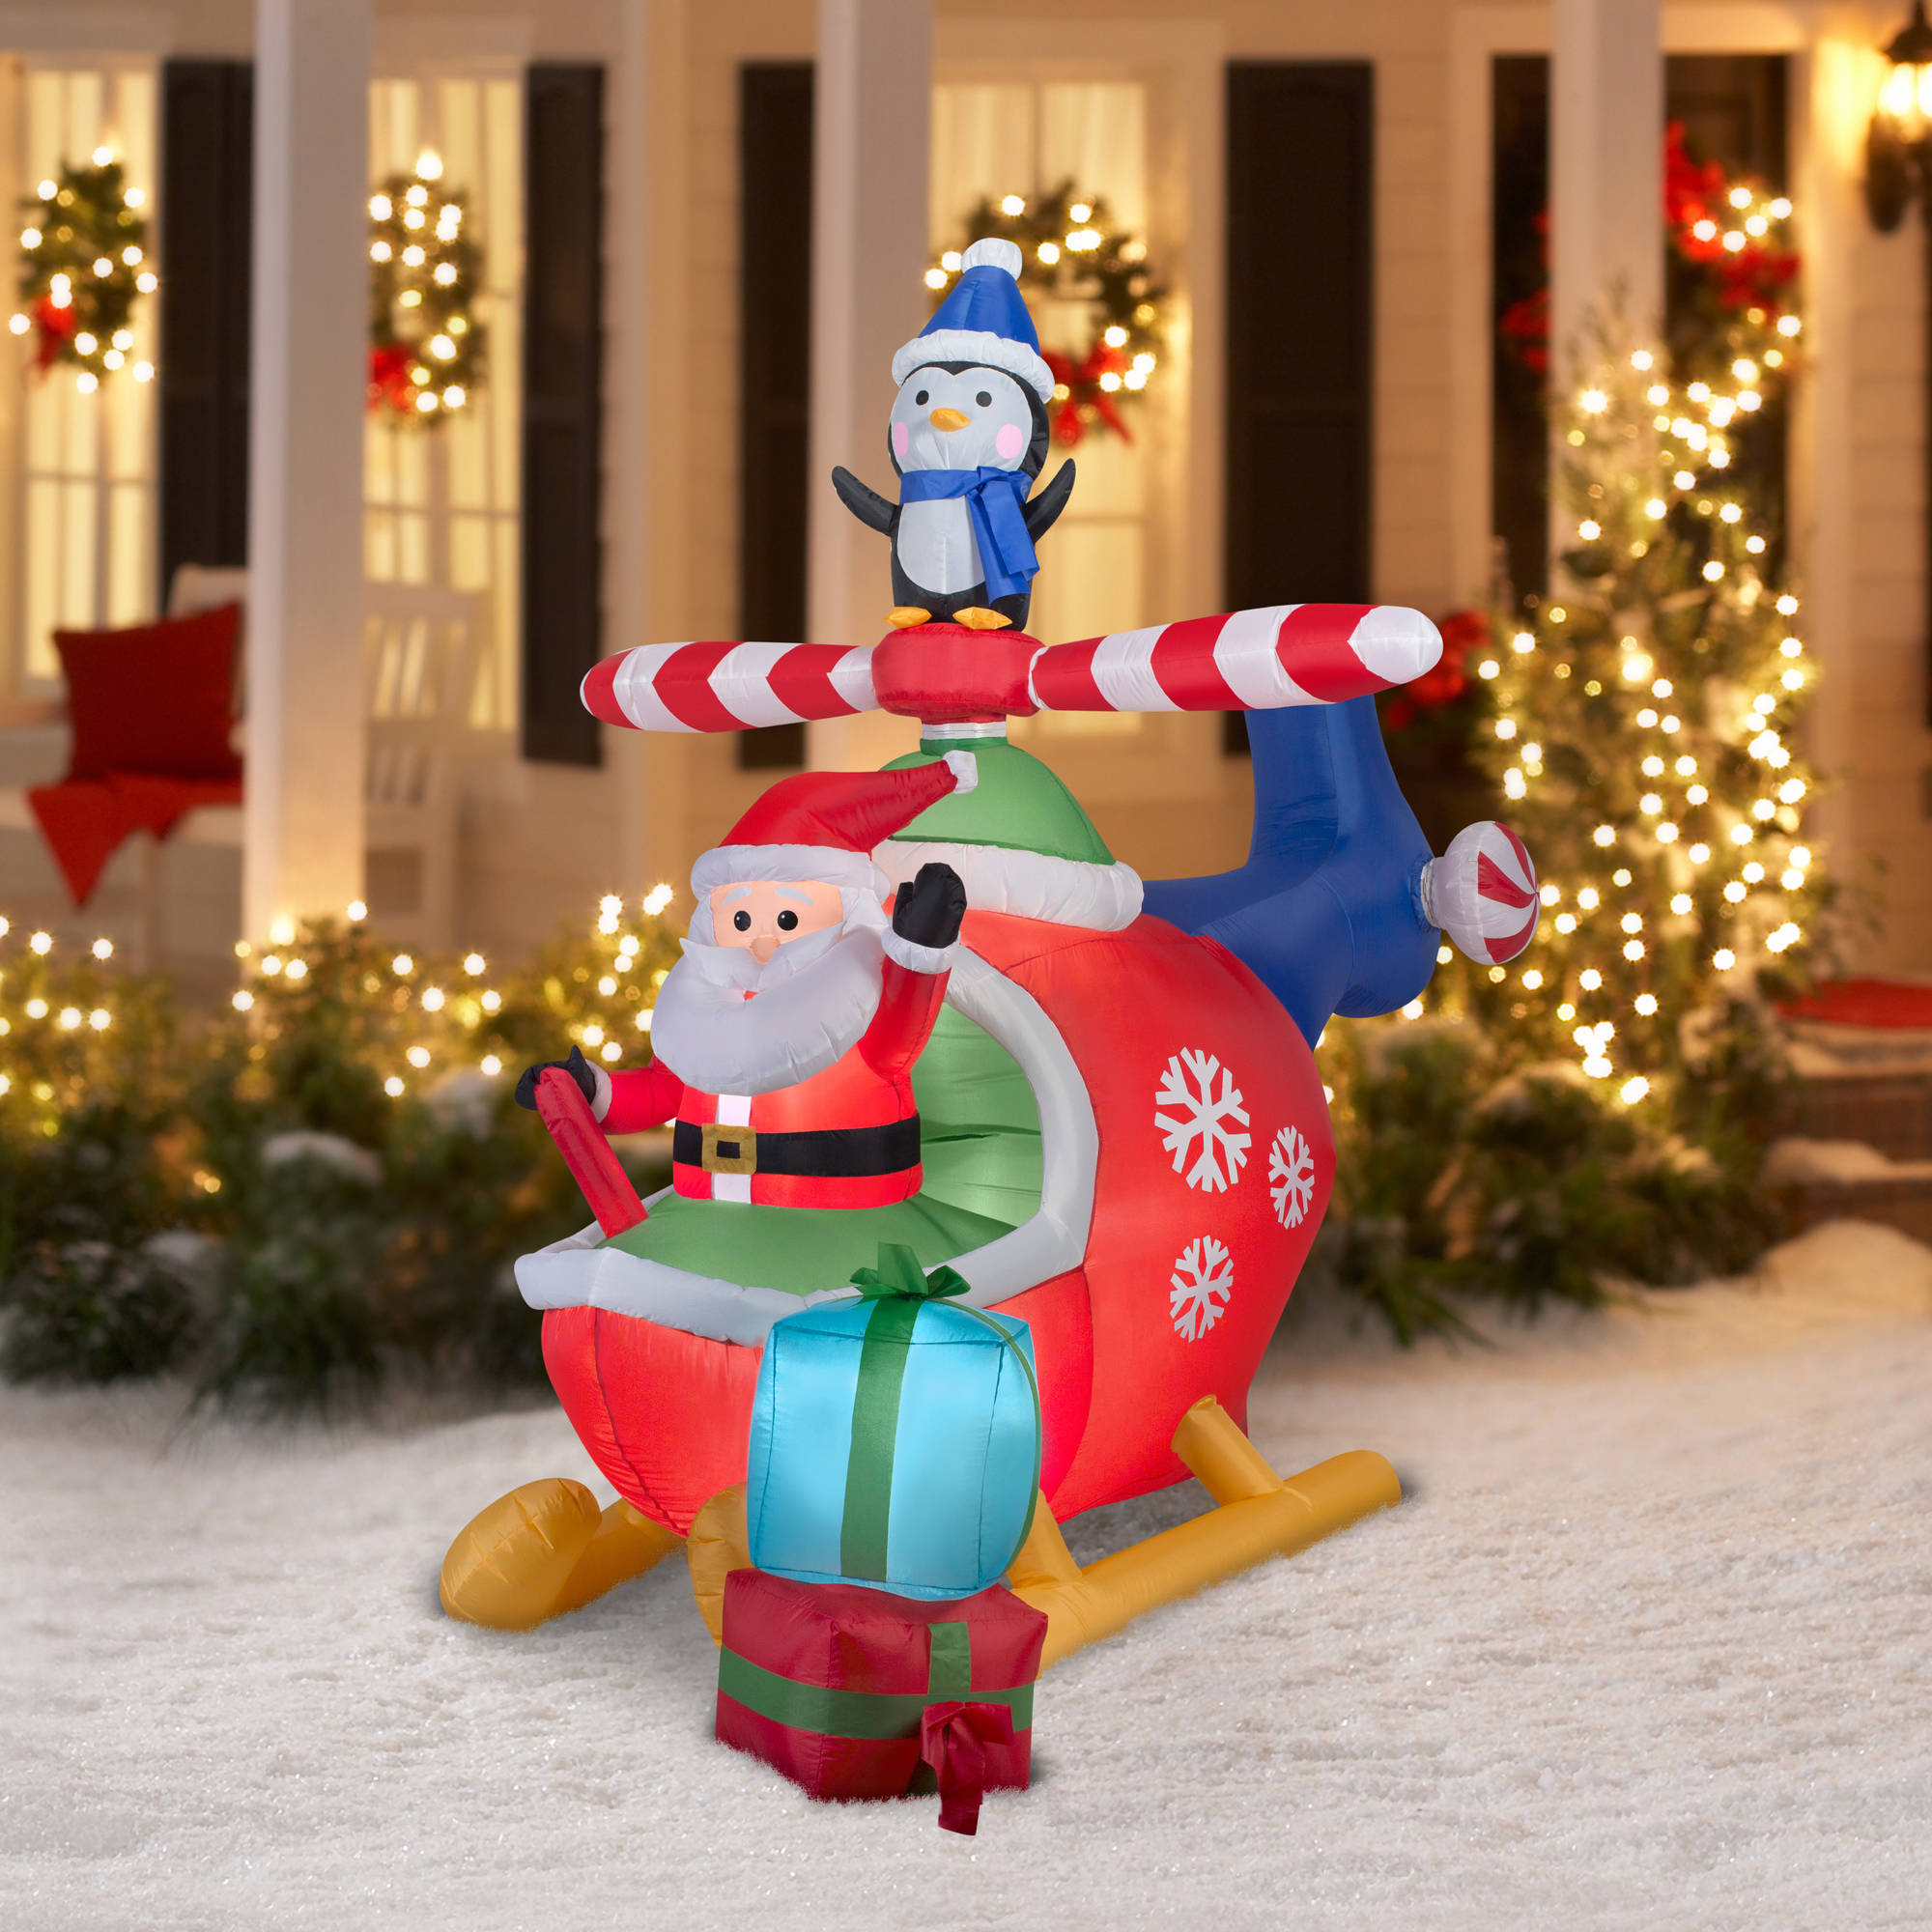 Cheap Inflatable Yard Decorations: Inflatable Christmas Decoration Stopped Working